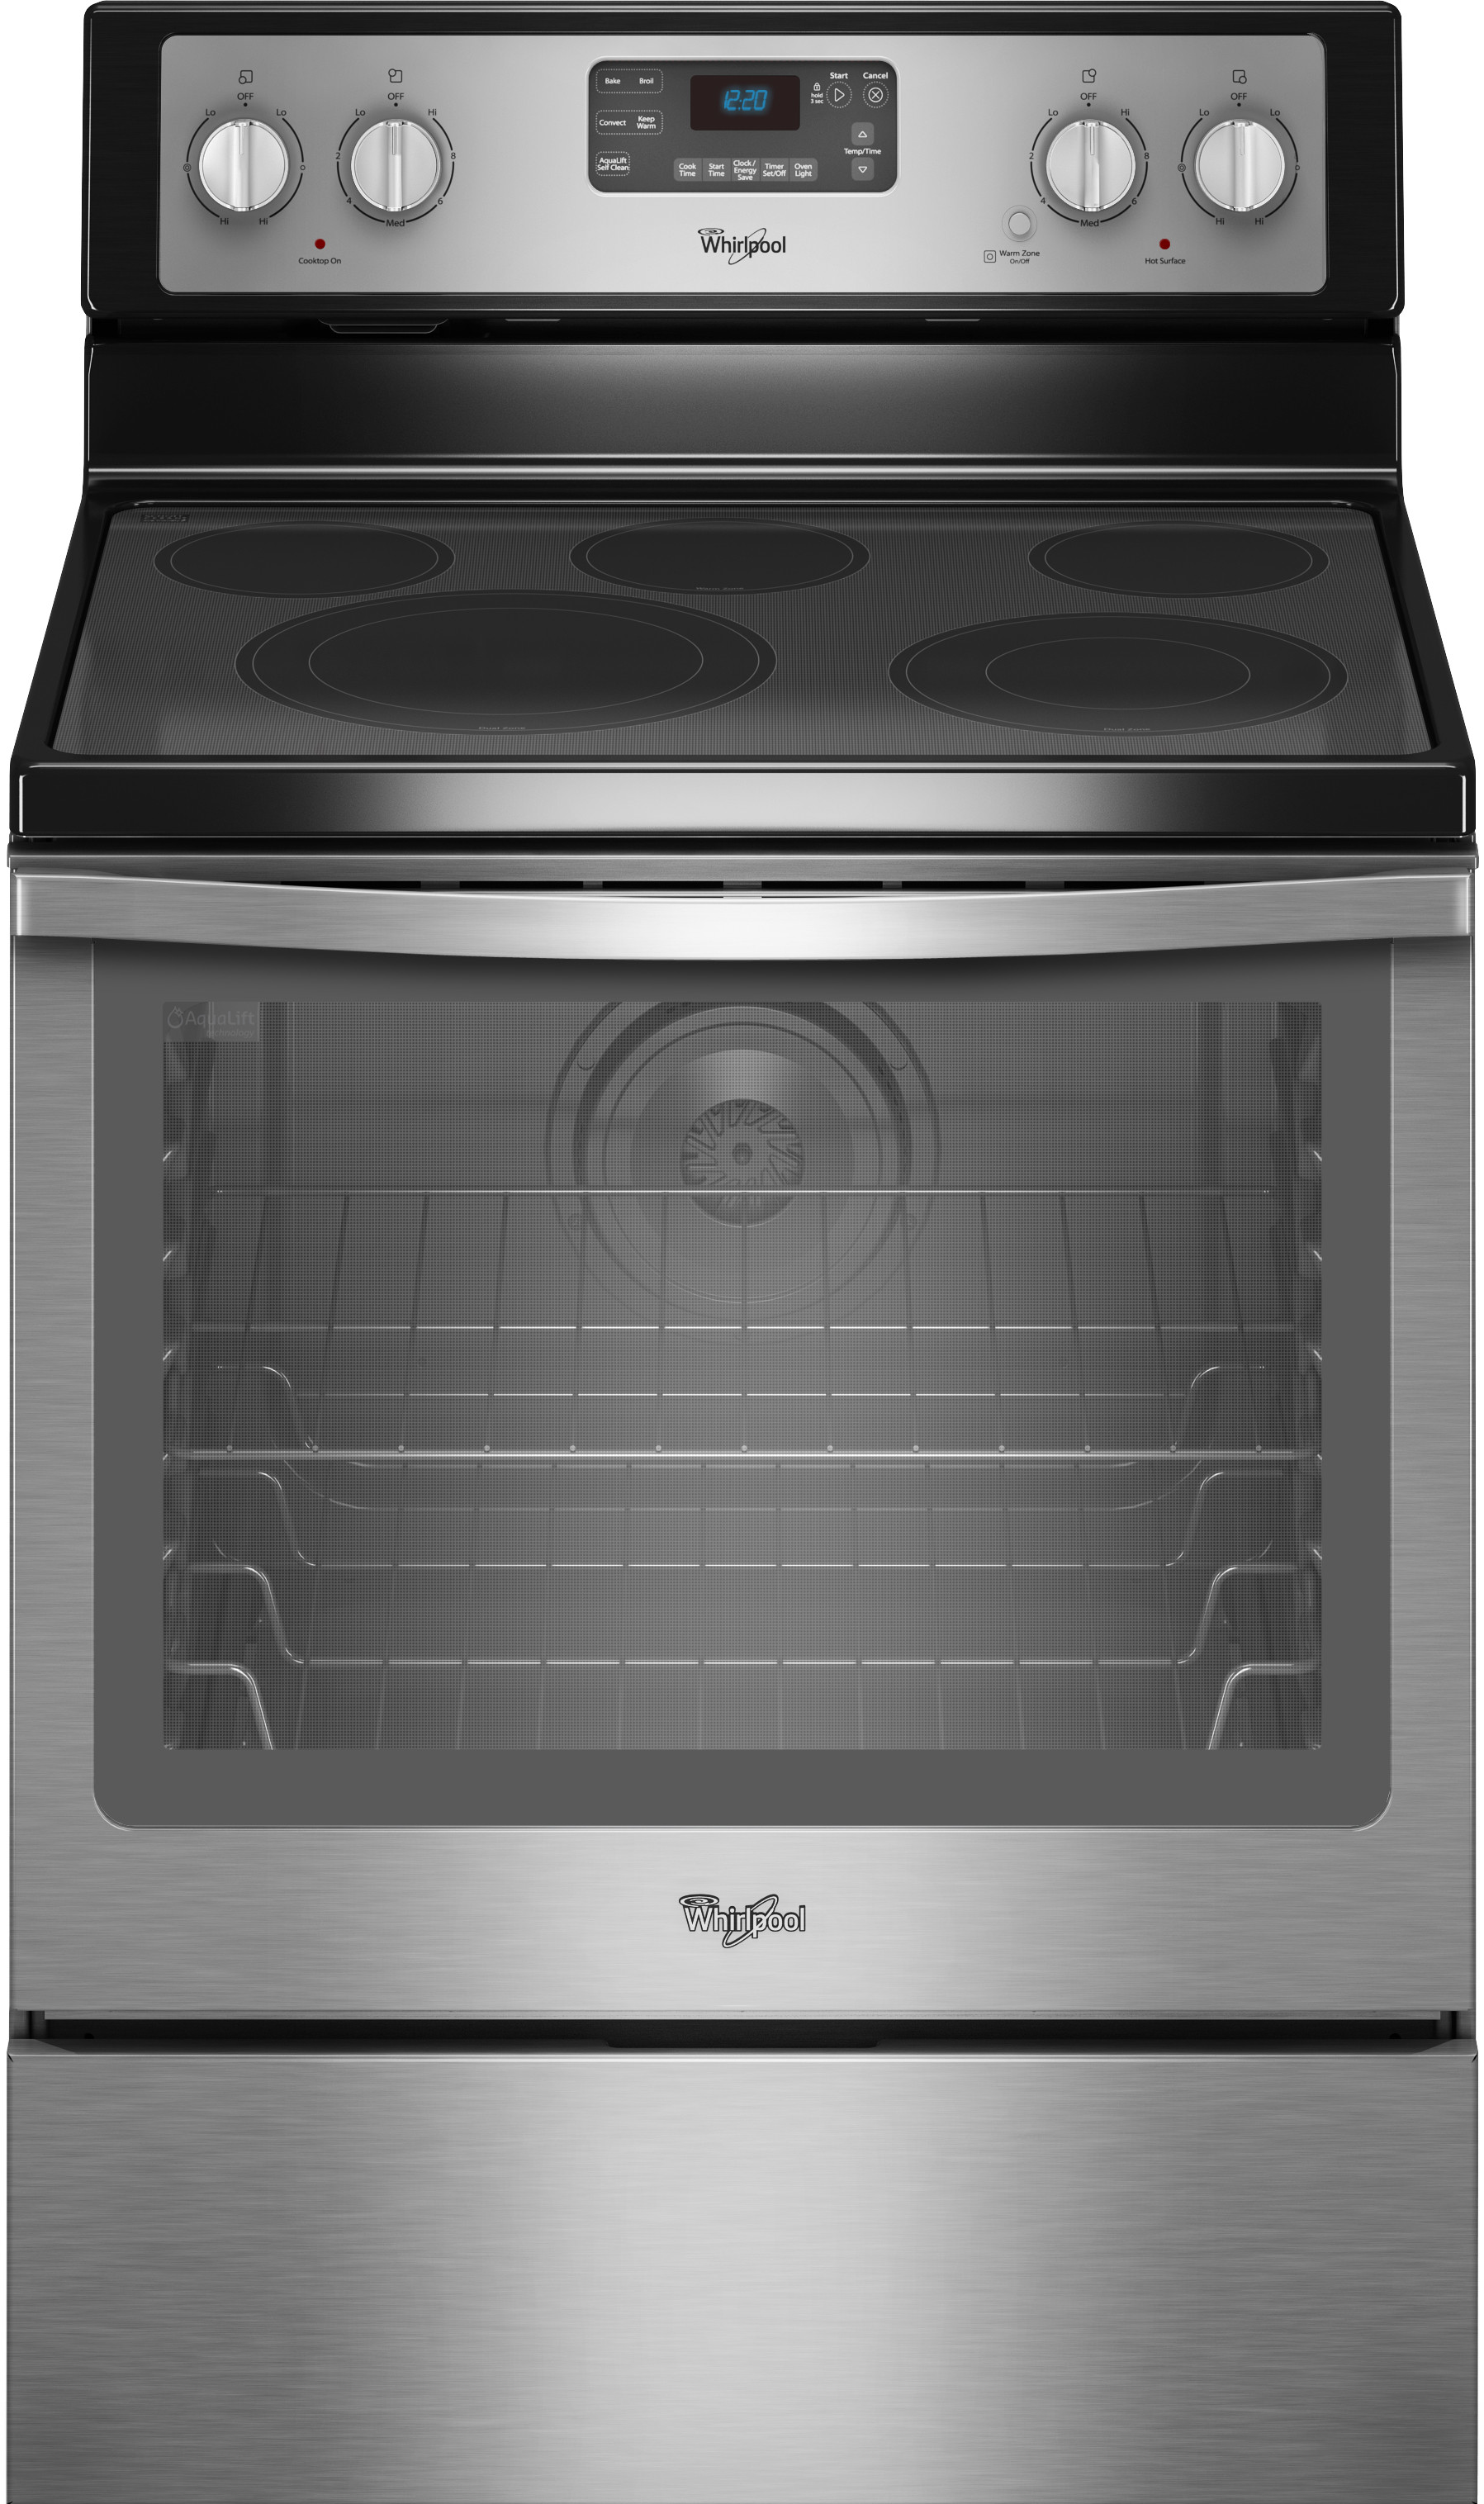 Whirlpool Wfe540h0es 30 Inch Freestanding Electric Range Closeout With Convection Accubake Flexheat Aqualift 5 Smoothtop Elements 6 4 Cu Ft